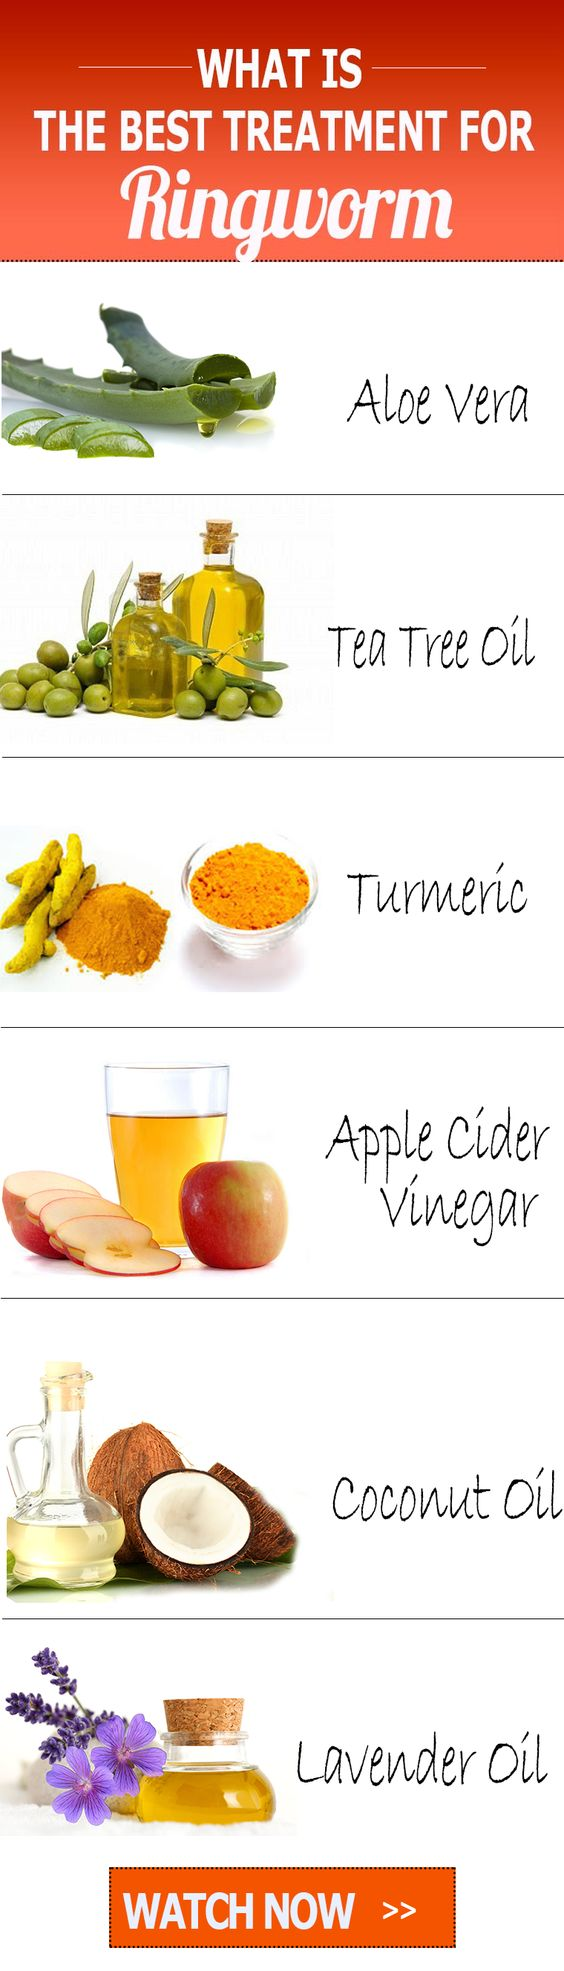 natural treatments for diseases of the most potent skin fungus disease